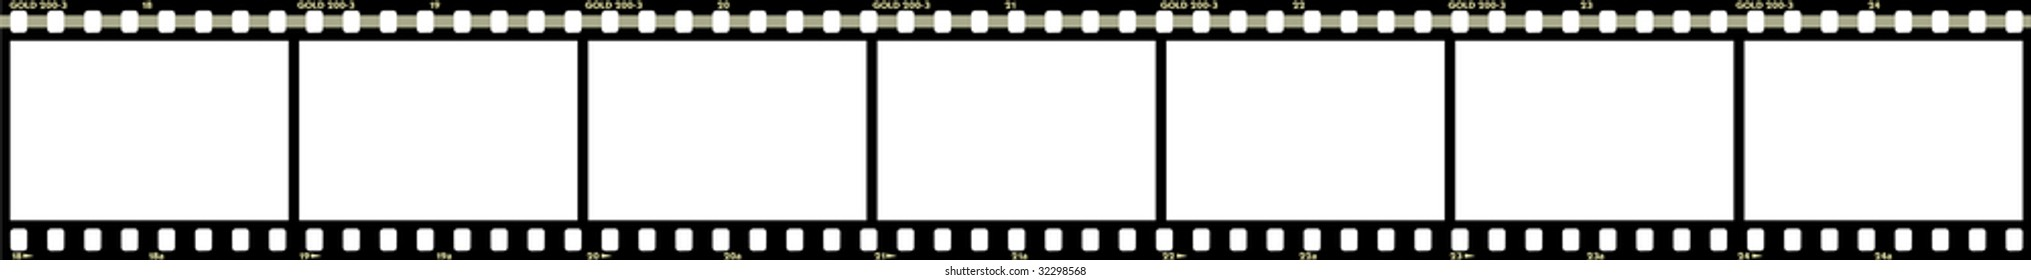 Strip film isolated on white